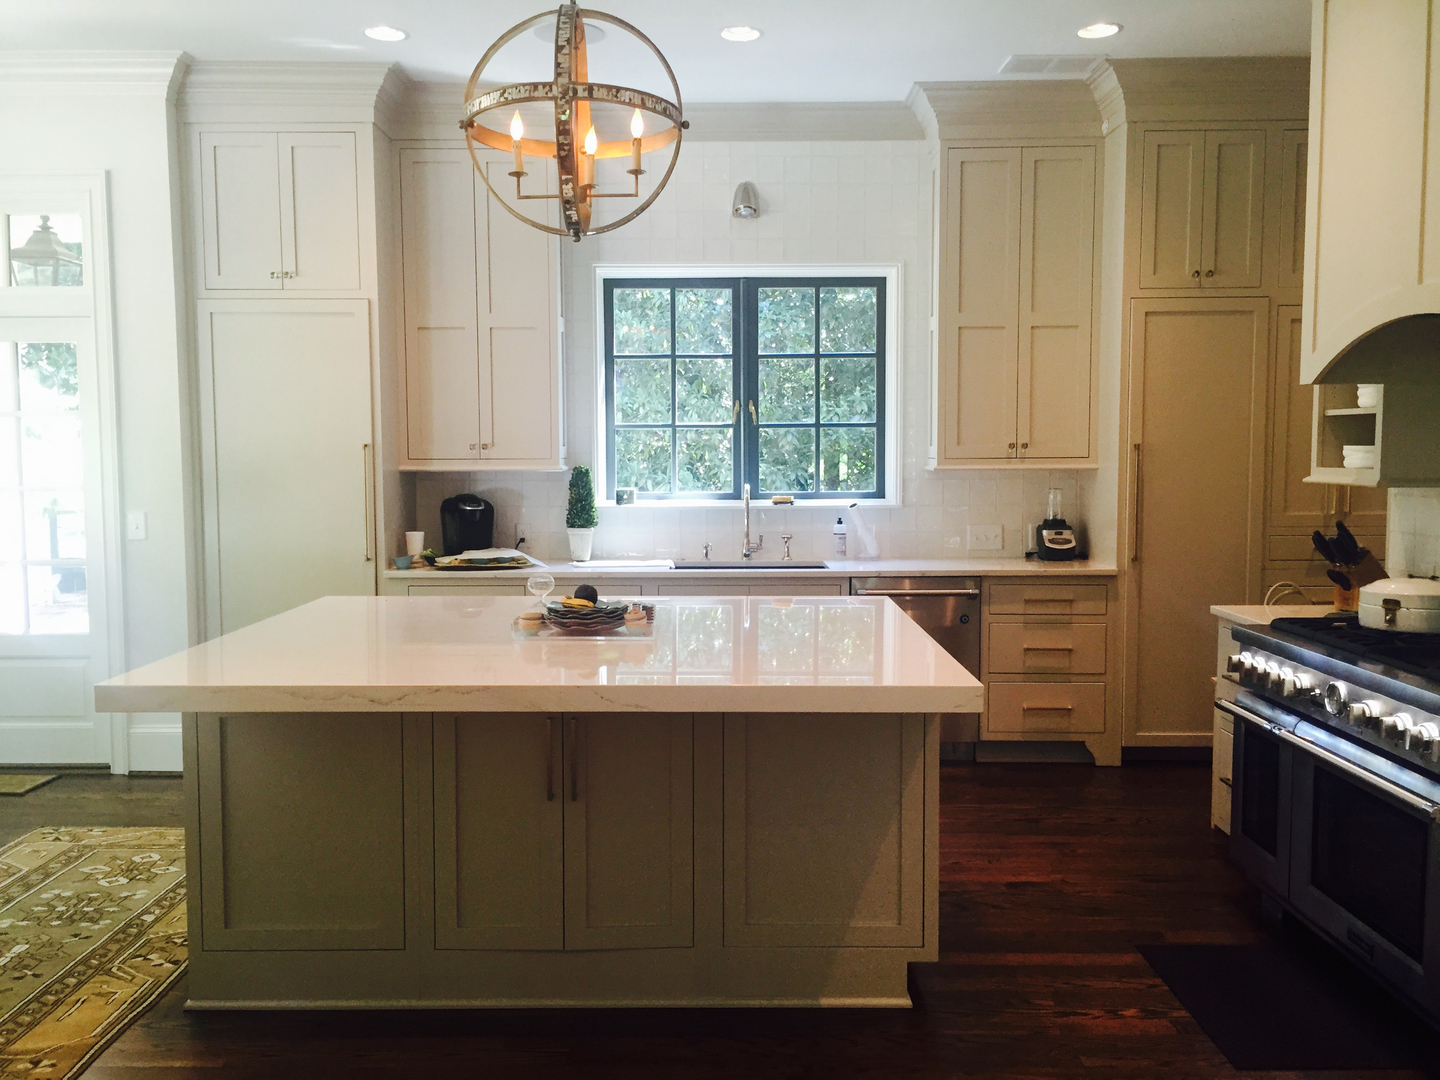 Kitchen Remodeling Designer - Signature Cabinetry & Design